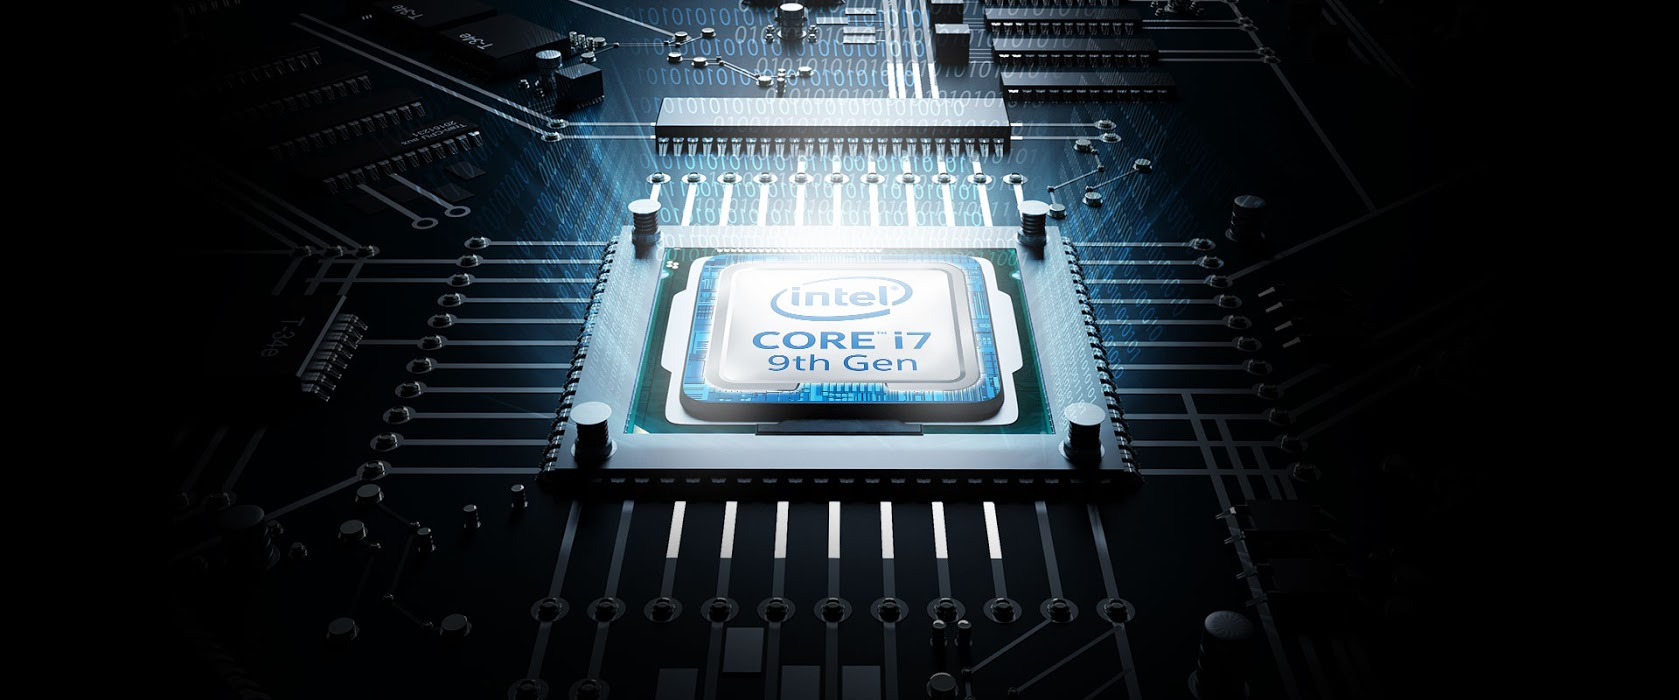 9th Gen Intel® Core™ i7 processors with the motherboard as background